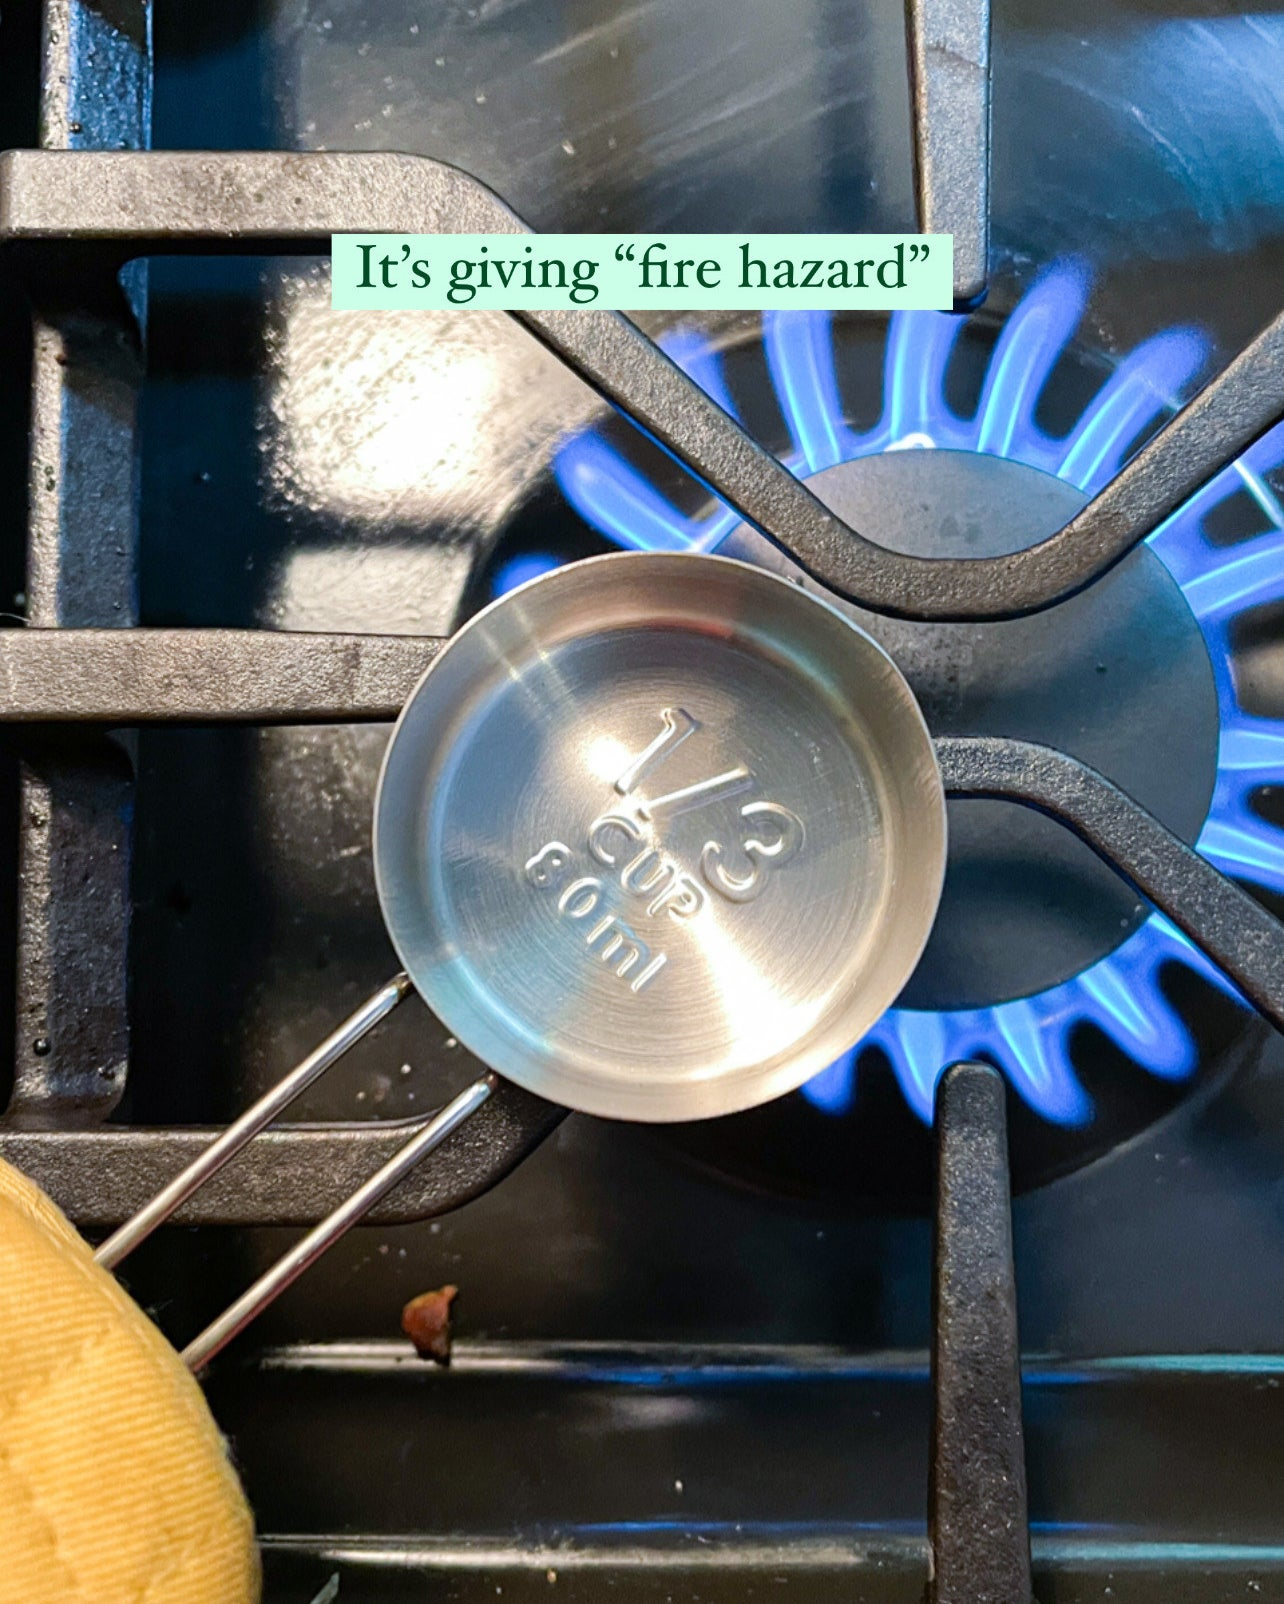 stainless steel measuring cup placed over the flame on a stove